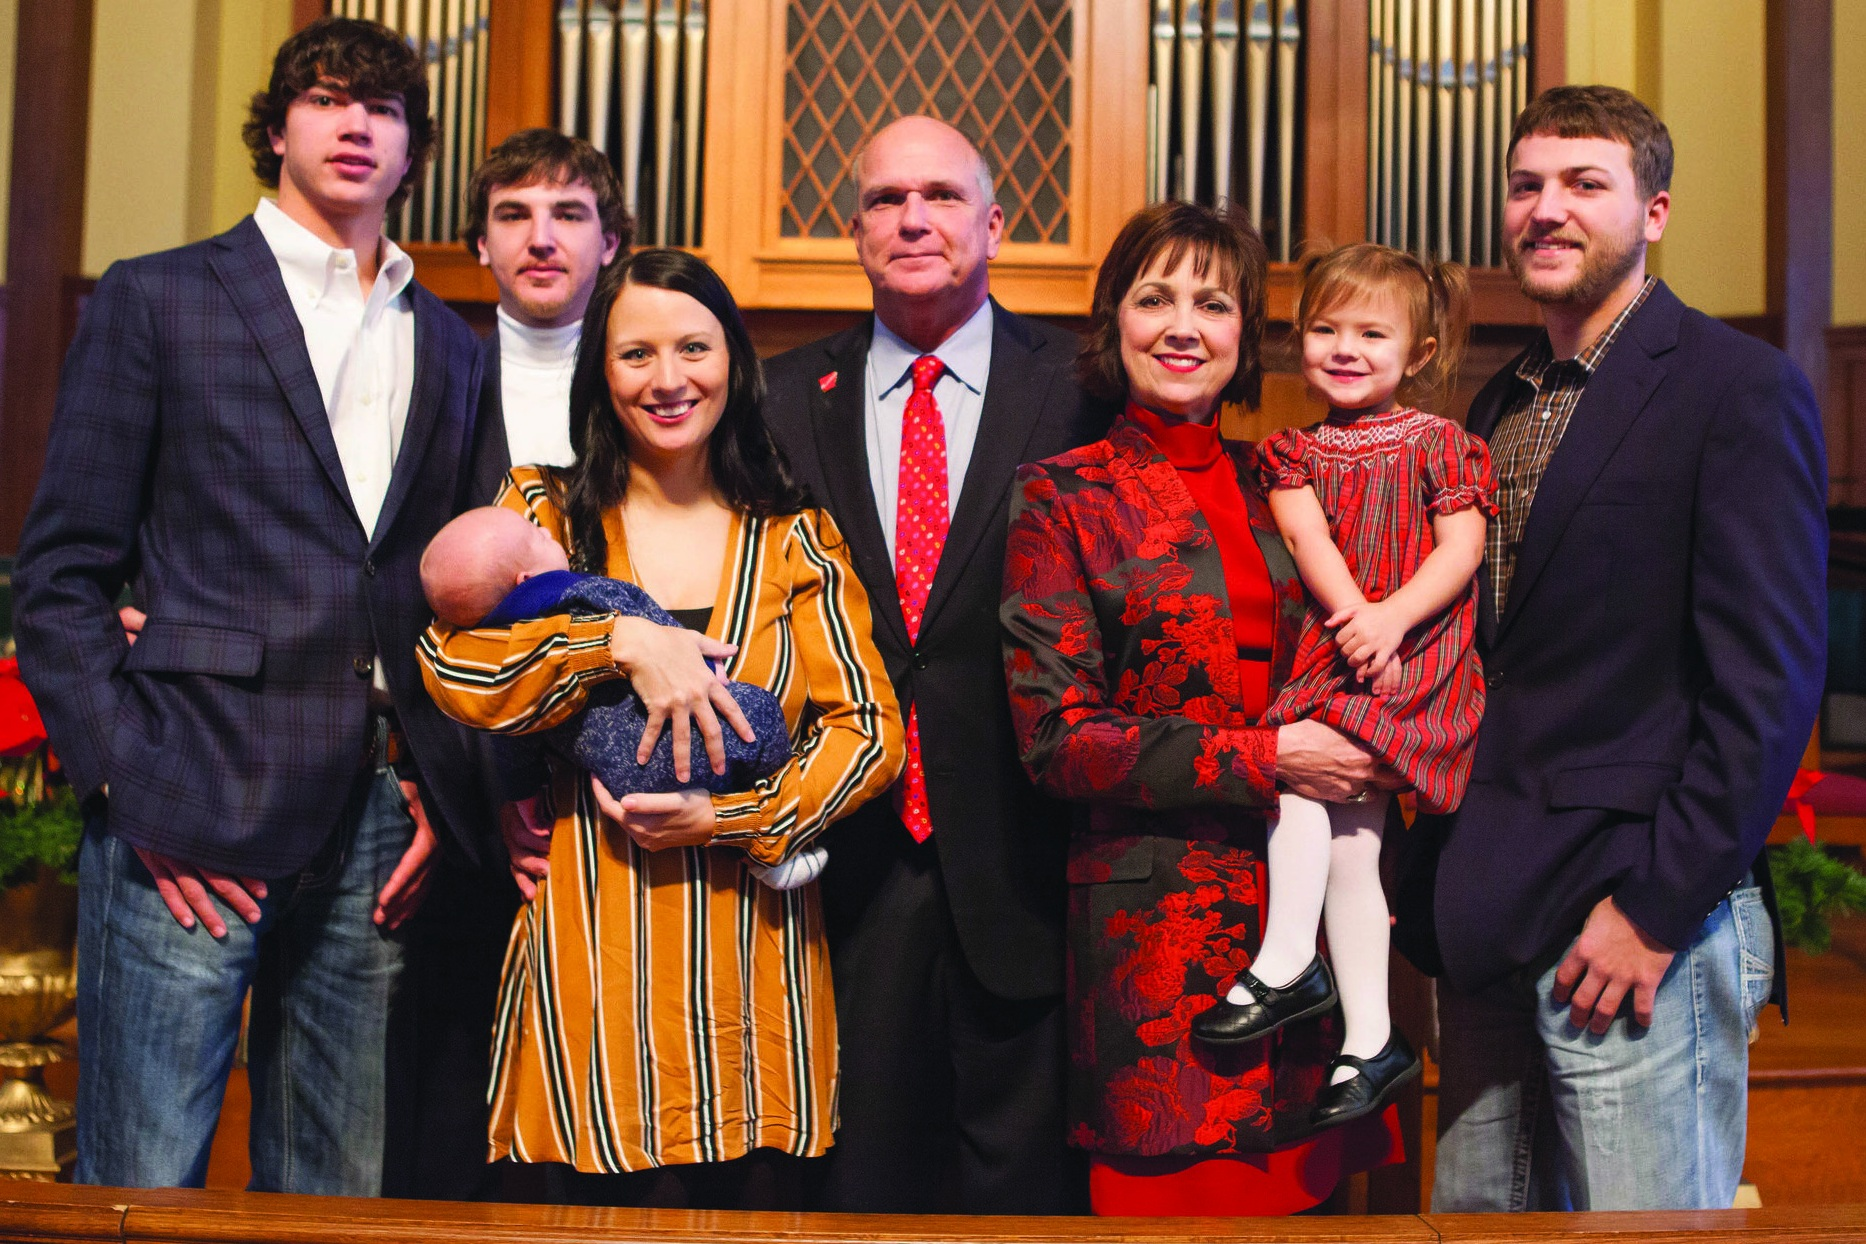 Allen Brown was sworn in as mayor of Texarkana, Arkansas, during a ceremony held January 1, 2019 at First United Methodist Chruch in Texarkana, Arkansas. With him are: son, Peyton; son, Matt; daughter-in-law, Megan; grandson, Manning; wife, Shelby; granddaughter, Sutton; and son, Jared.